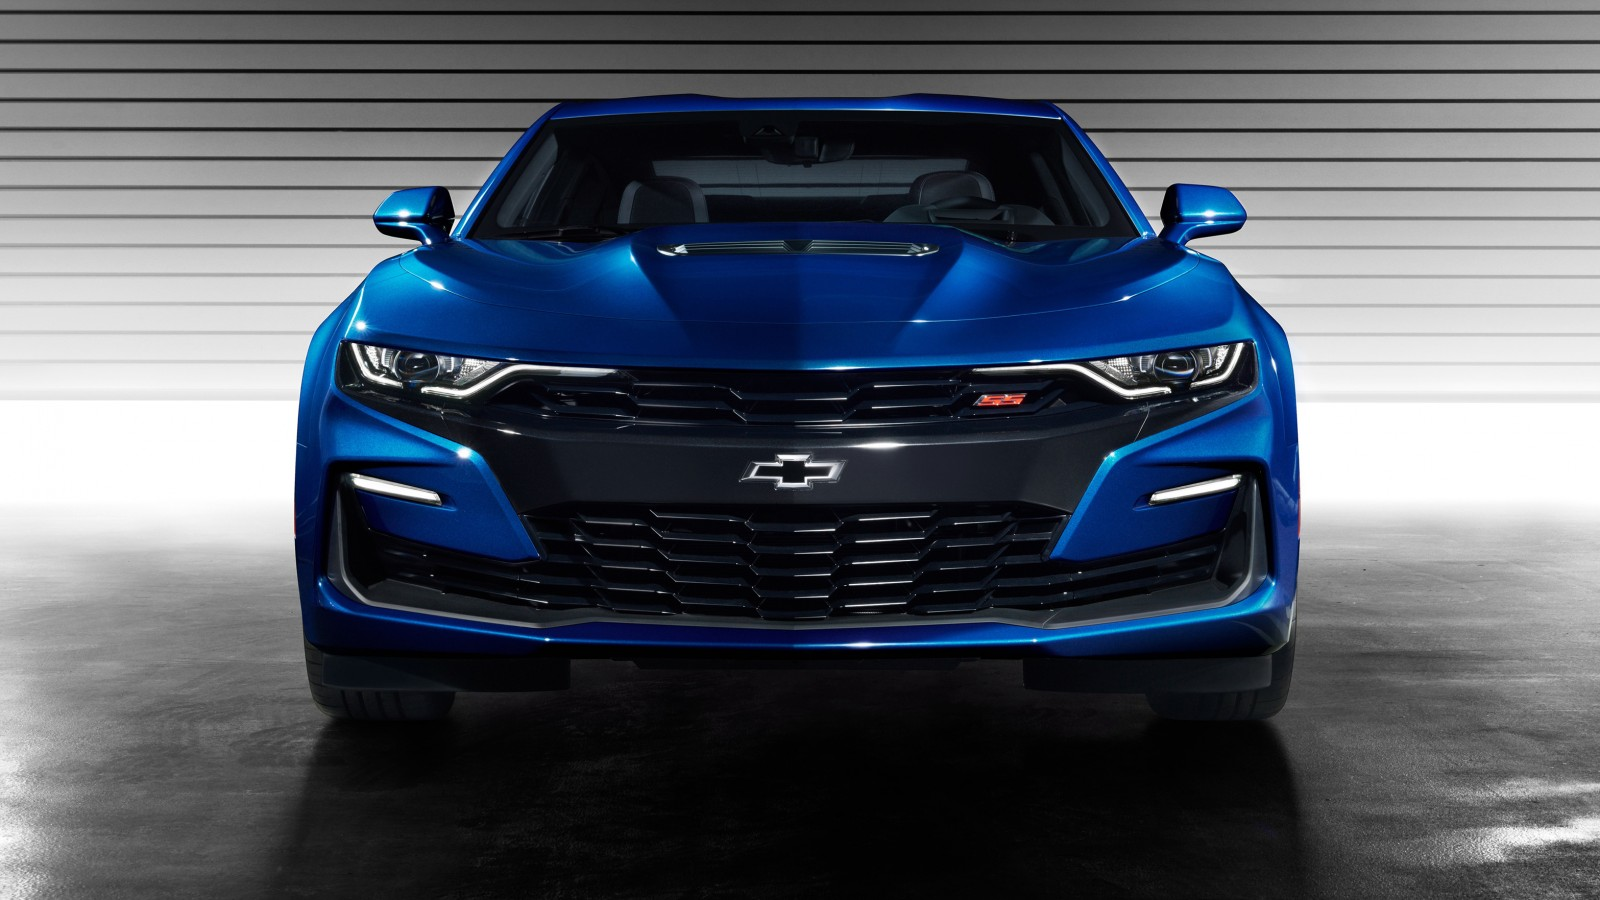 Hd Wallpaper Car Widescreen 2019 Chevrolet Camaro Ss Wallpaper Hd Car Wallpapers